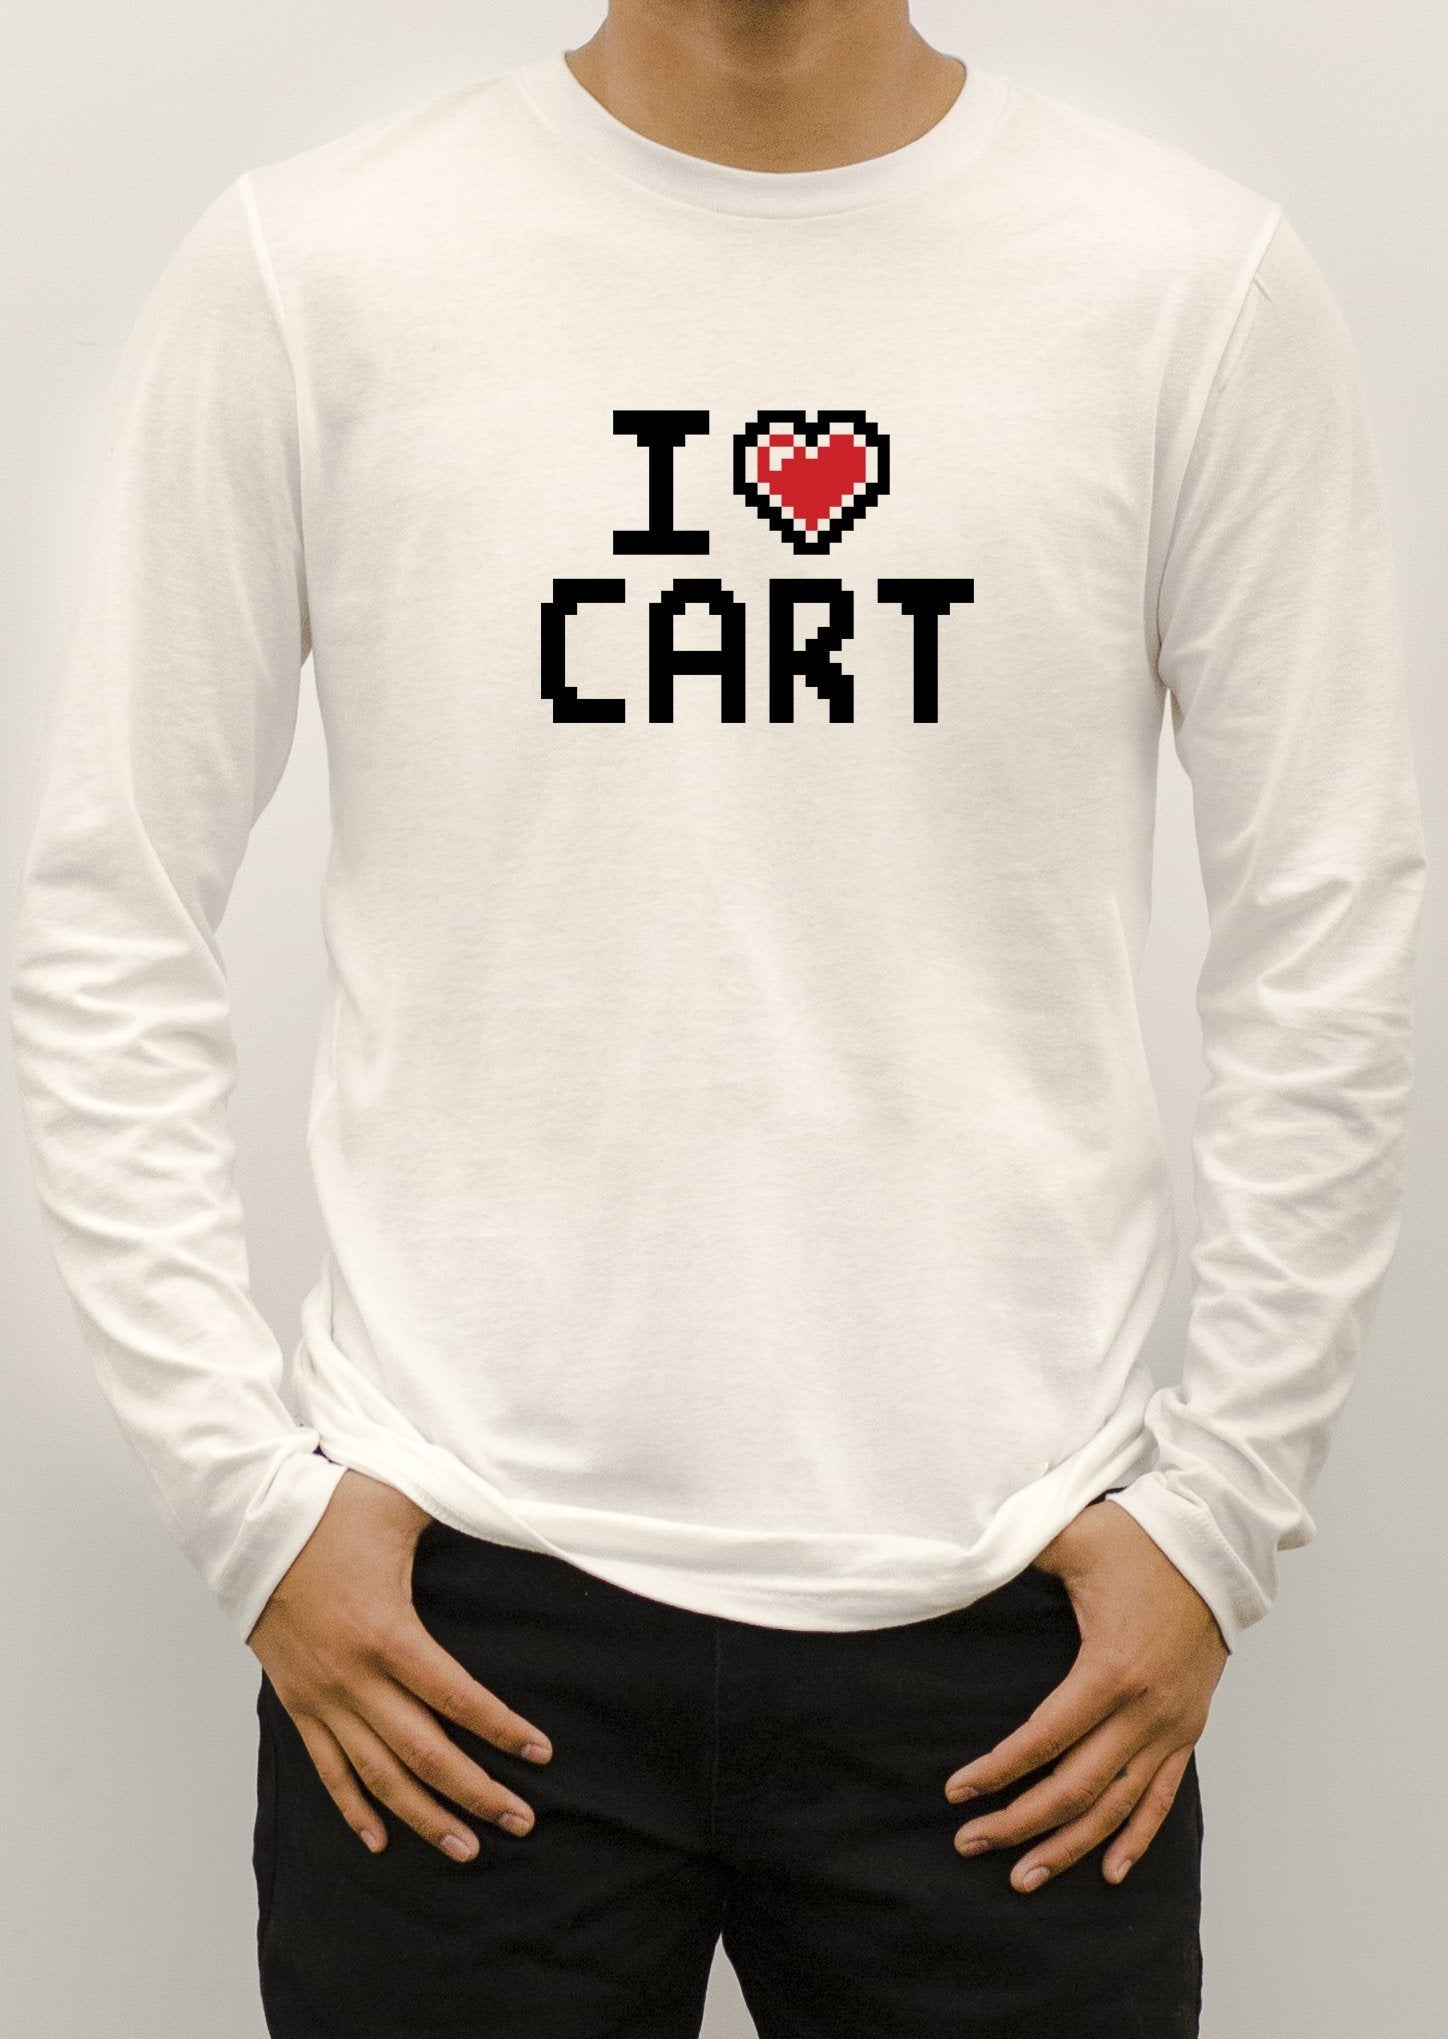 Pixel - I Love CART - Long Sleeve T-Shirt / Unisex Fit